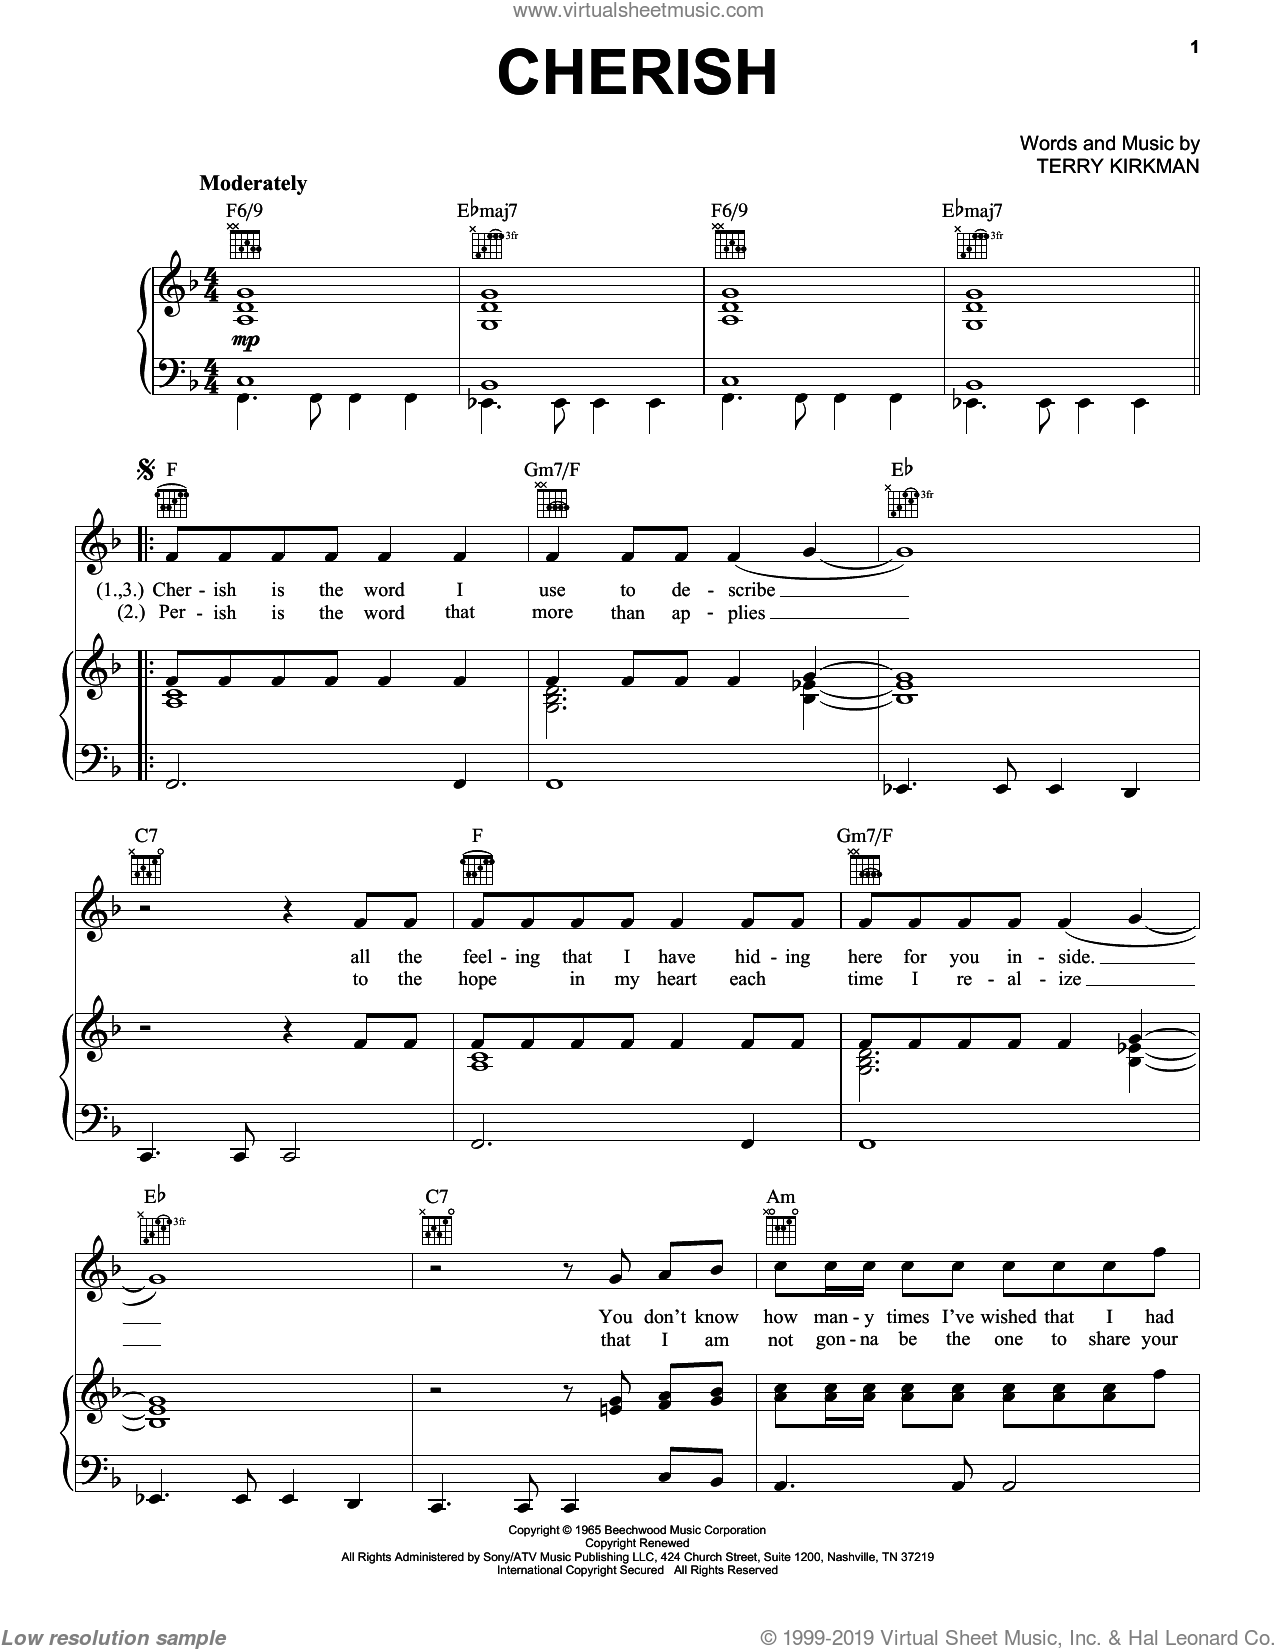 Cherish sheet music for voice, piano or guitar by Terry Kirkman